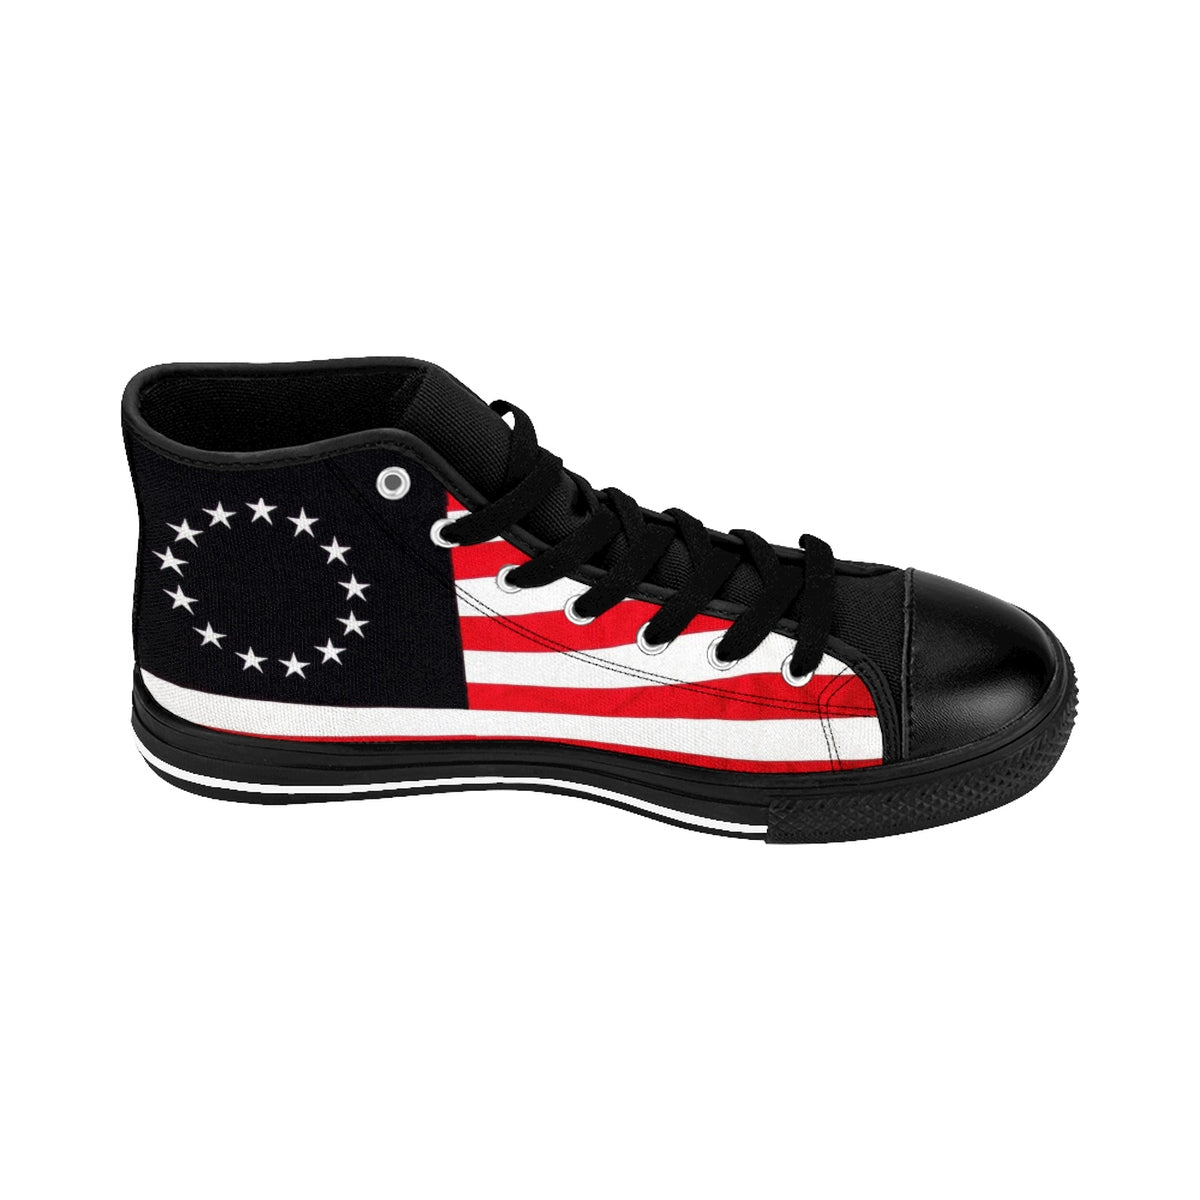 Betsy Ross Women's High-top Sneakers